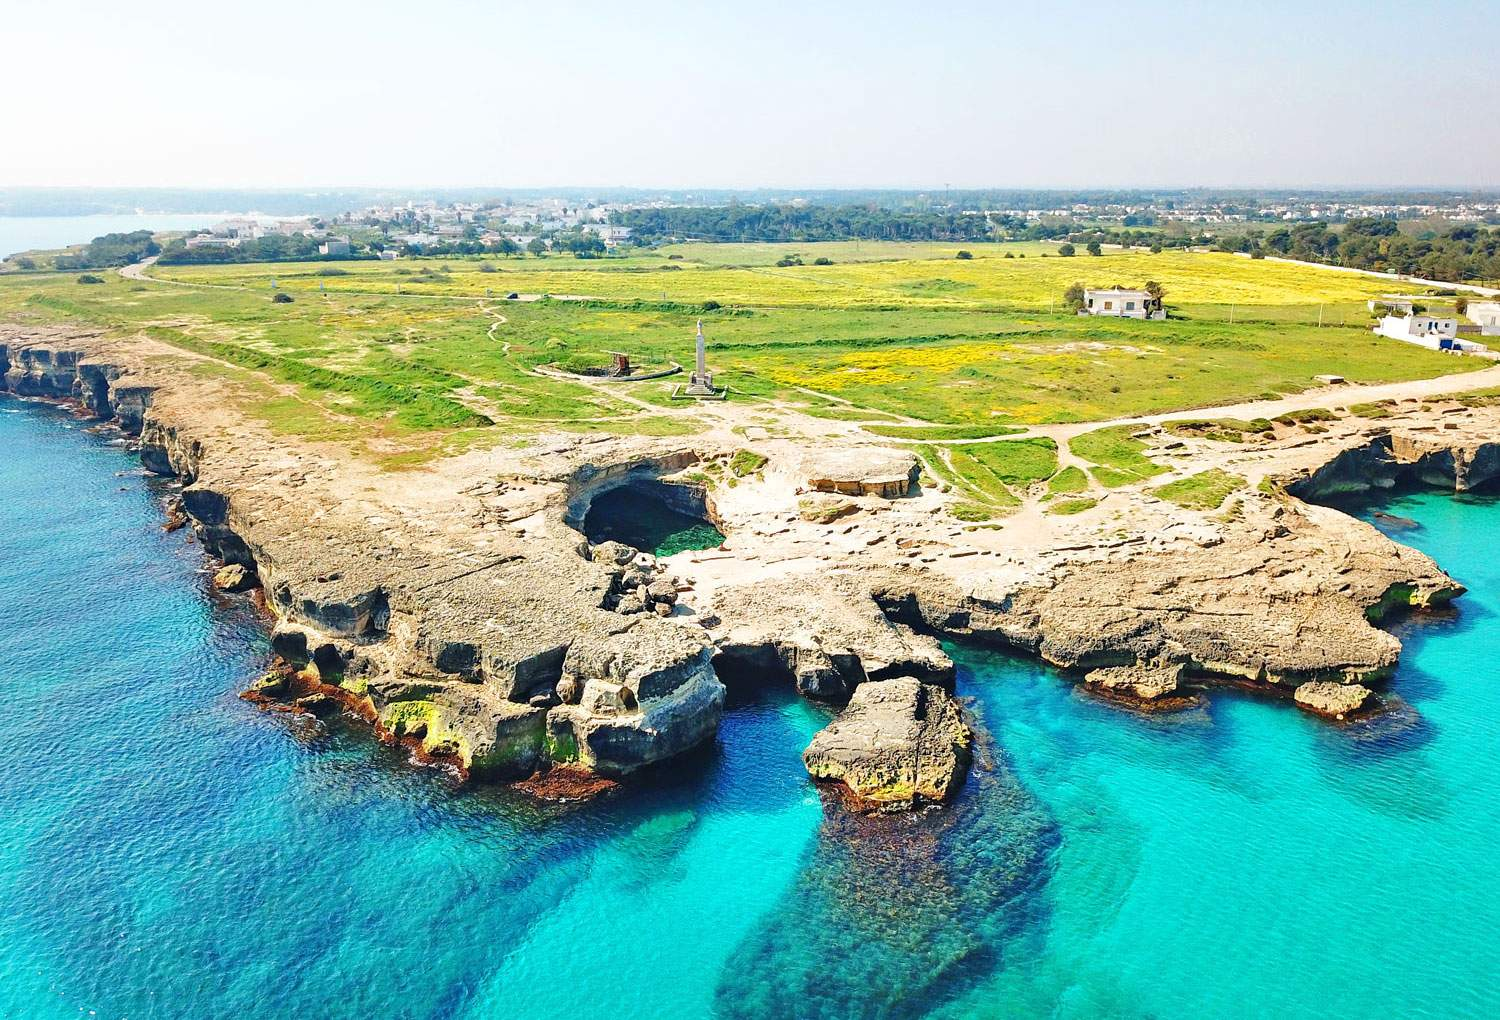 Cave-of-Poetry-roca-puglia-italy-swimming-natural-pool-aerial